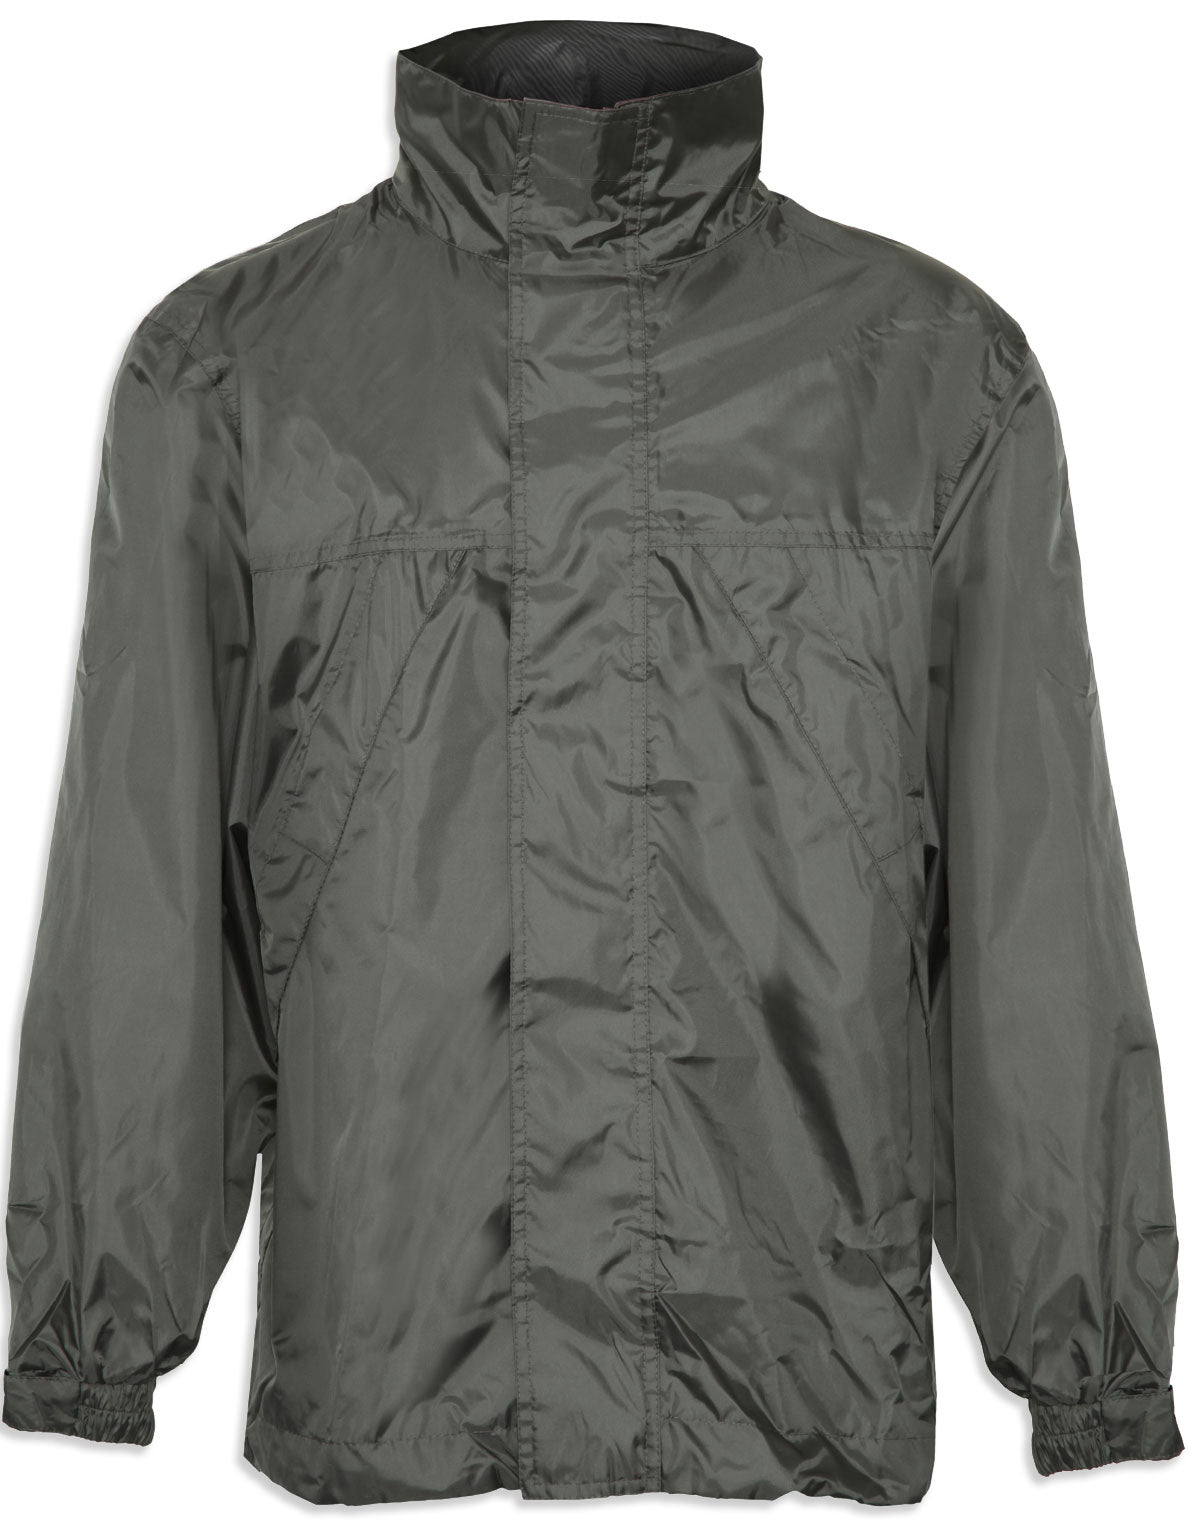 Champion Typhoon Waterproof Shell Jacket. Olive,